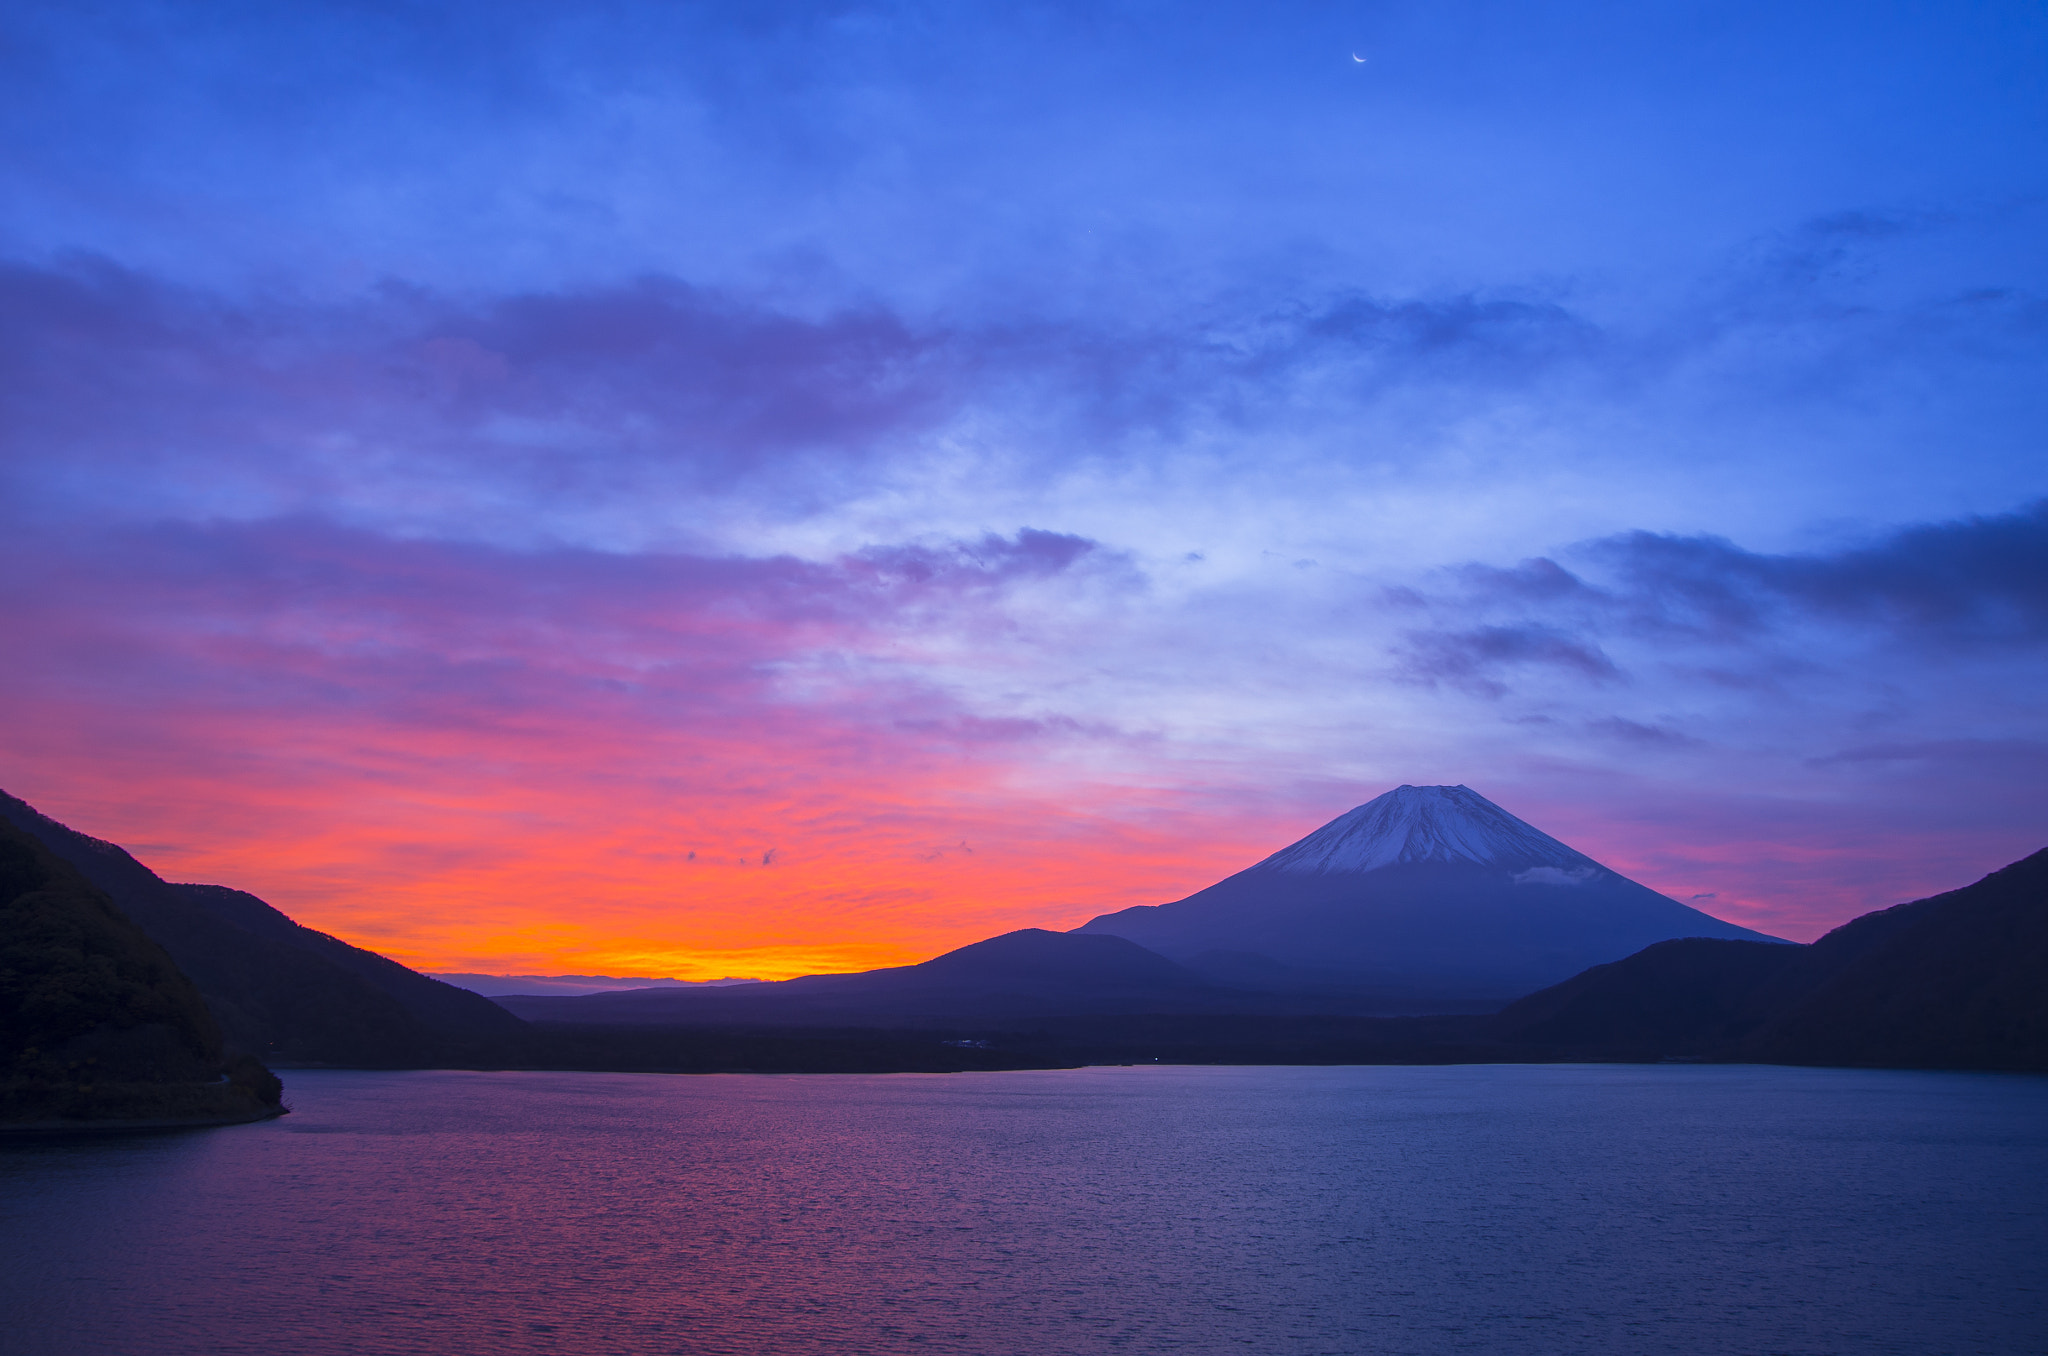 Photograph Dawn of Mt. Fuji with crescent moon by Hidetoshi Kikuchi on 500px